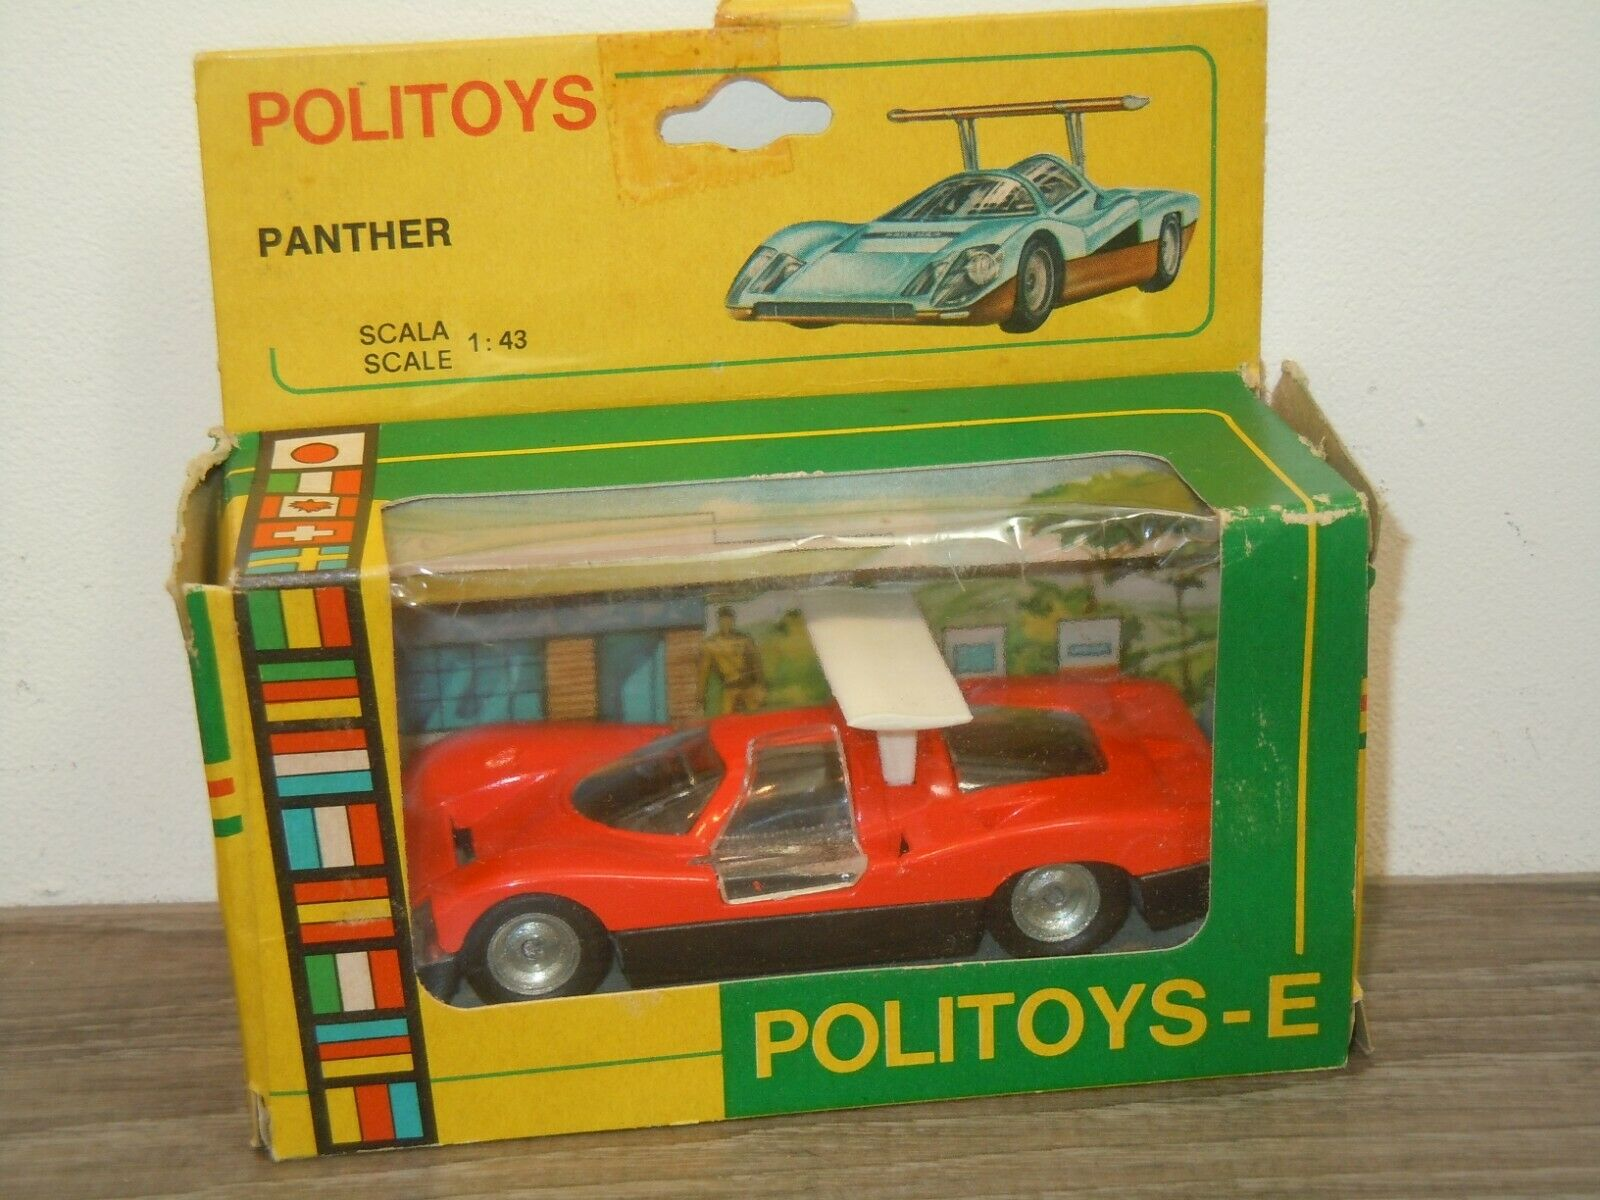 Panther - Politoys 564  1 43 in Box 36703